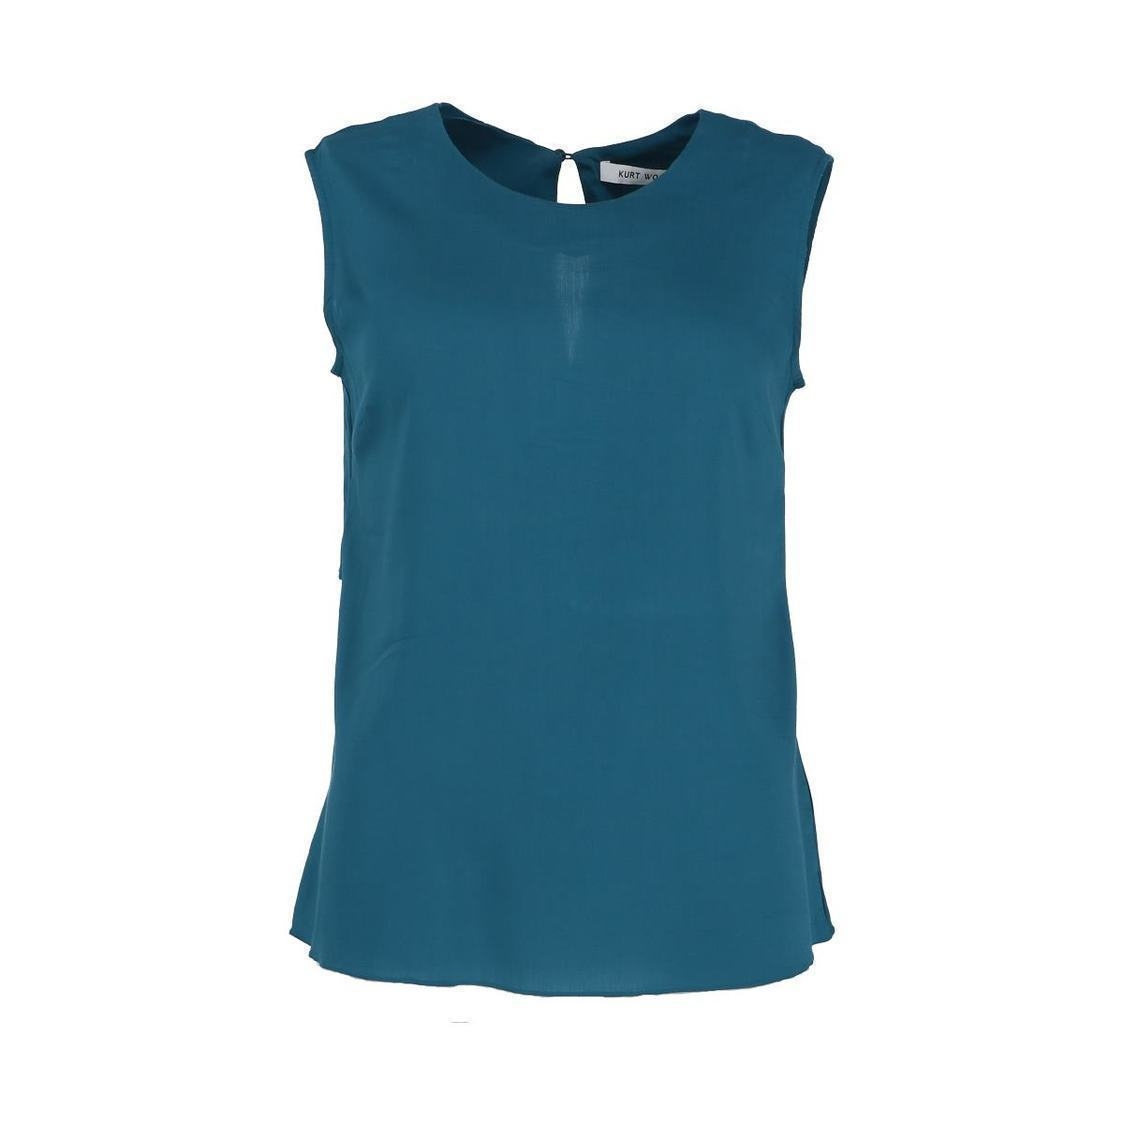 Super Soft Cowl Sleeve Top Teal